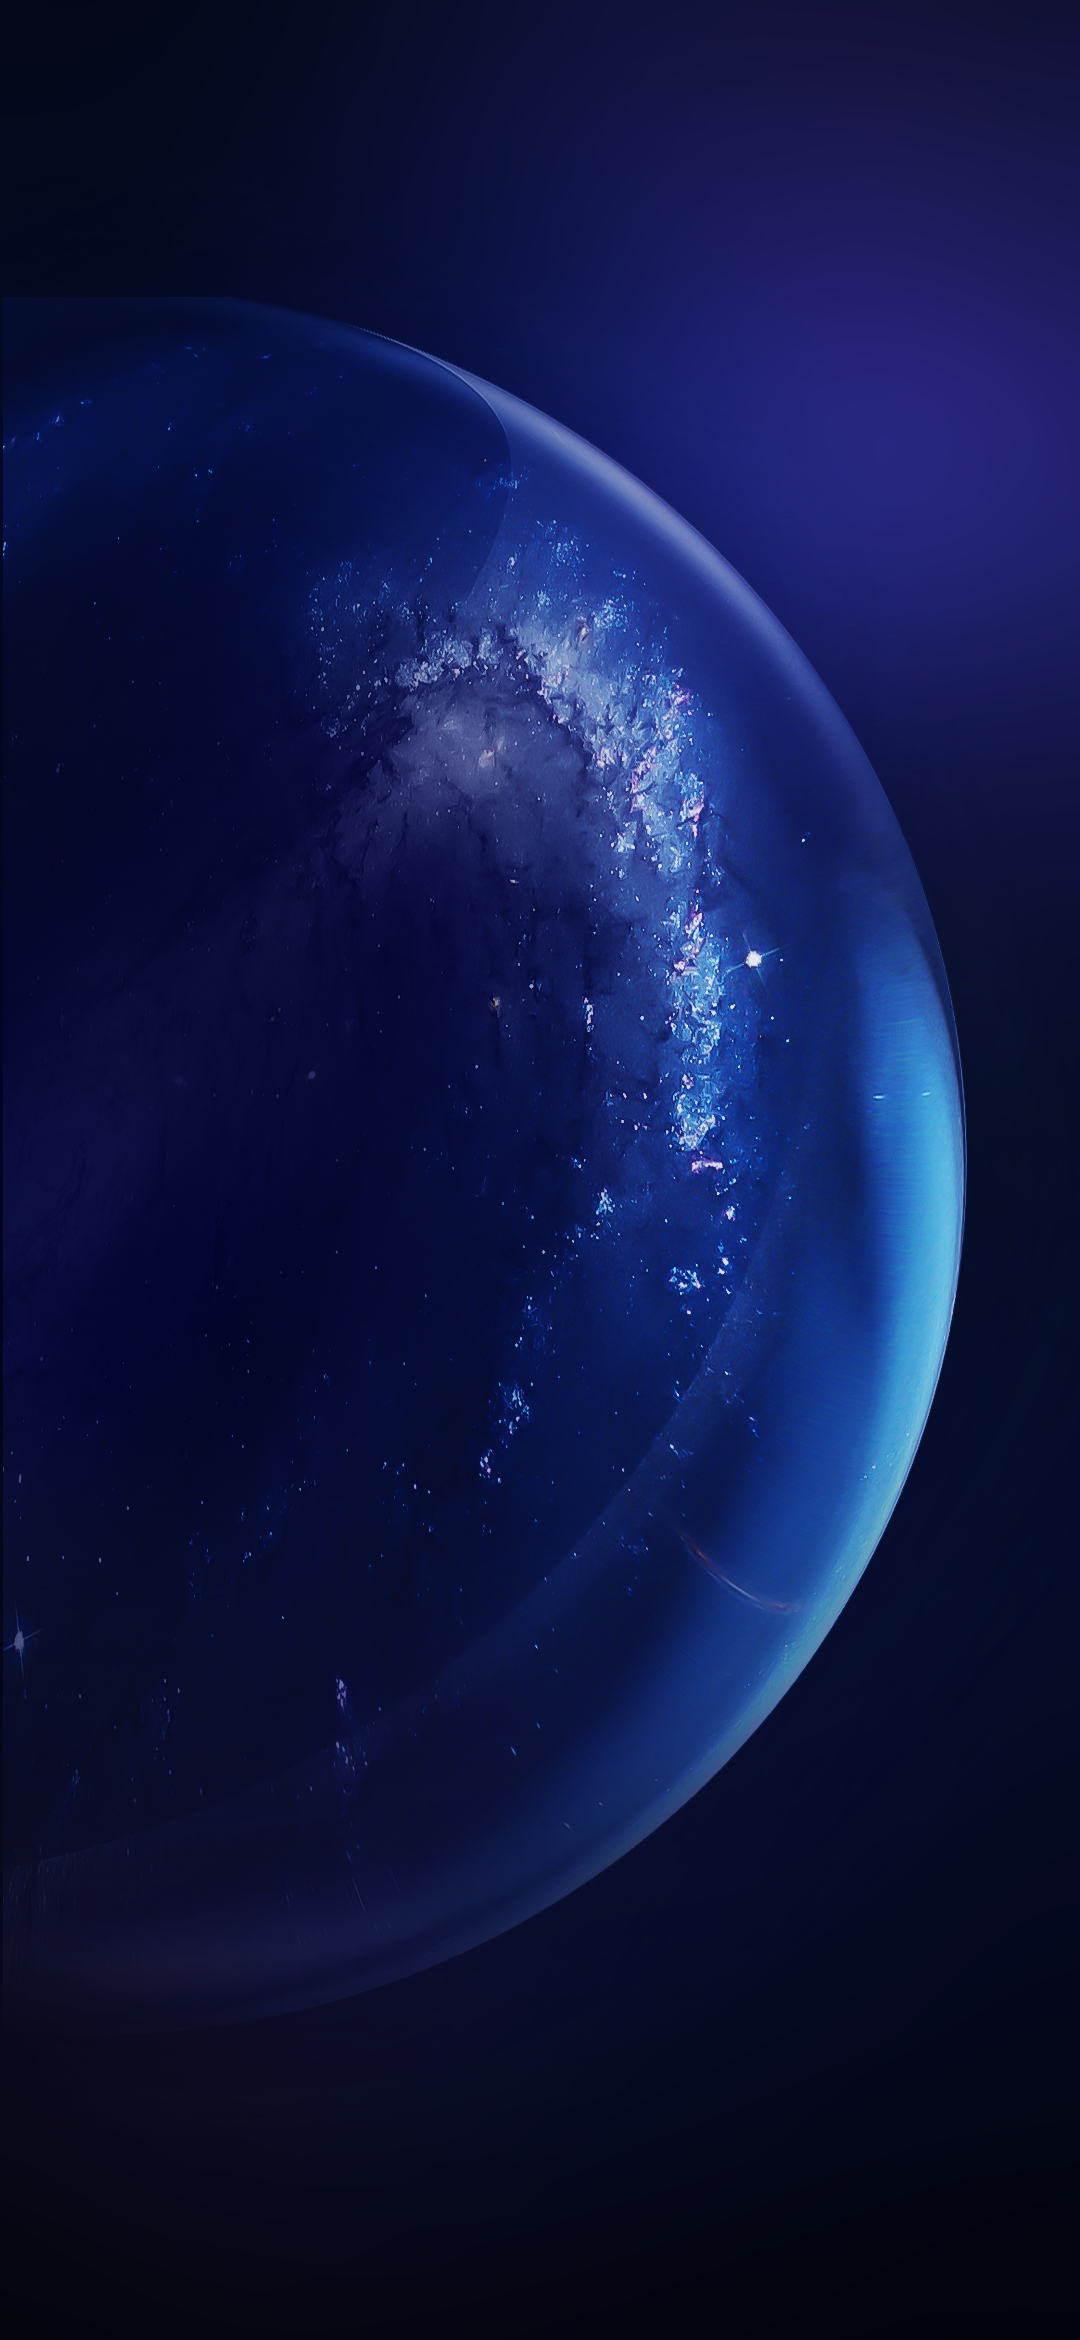 Download Vivo Z1 Pro Official Wallpaper Here Full Hd Resolution